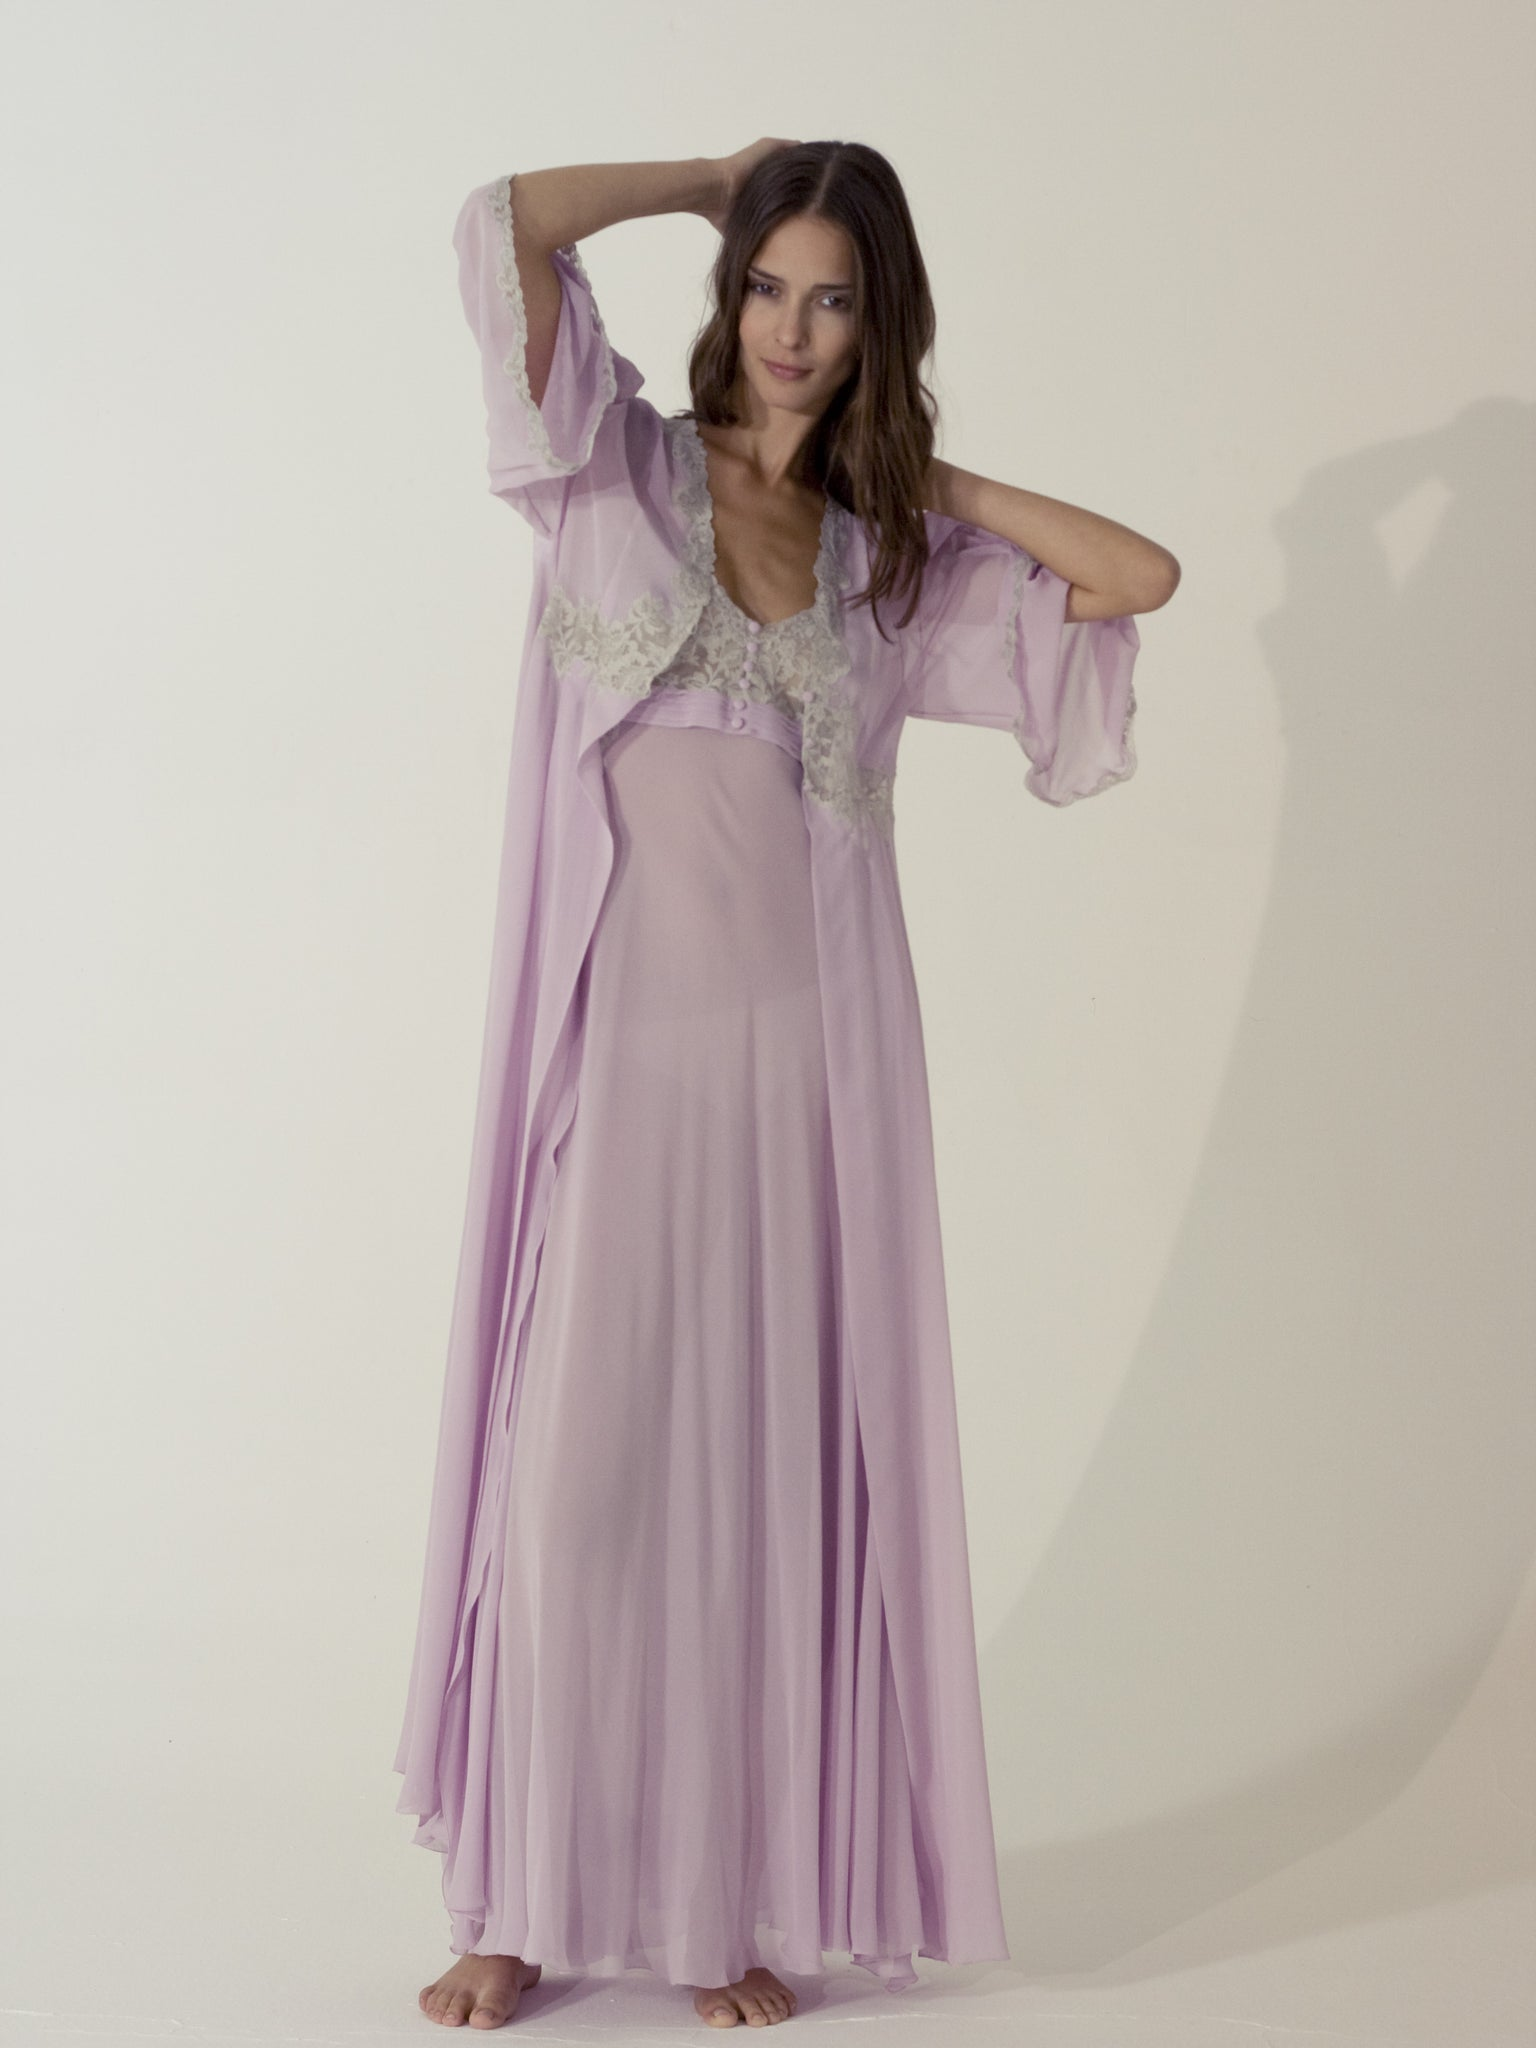 Silk Nightgown & Robe - Flora Lastraioli Shop Online